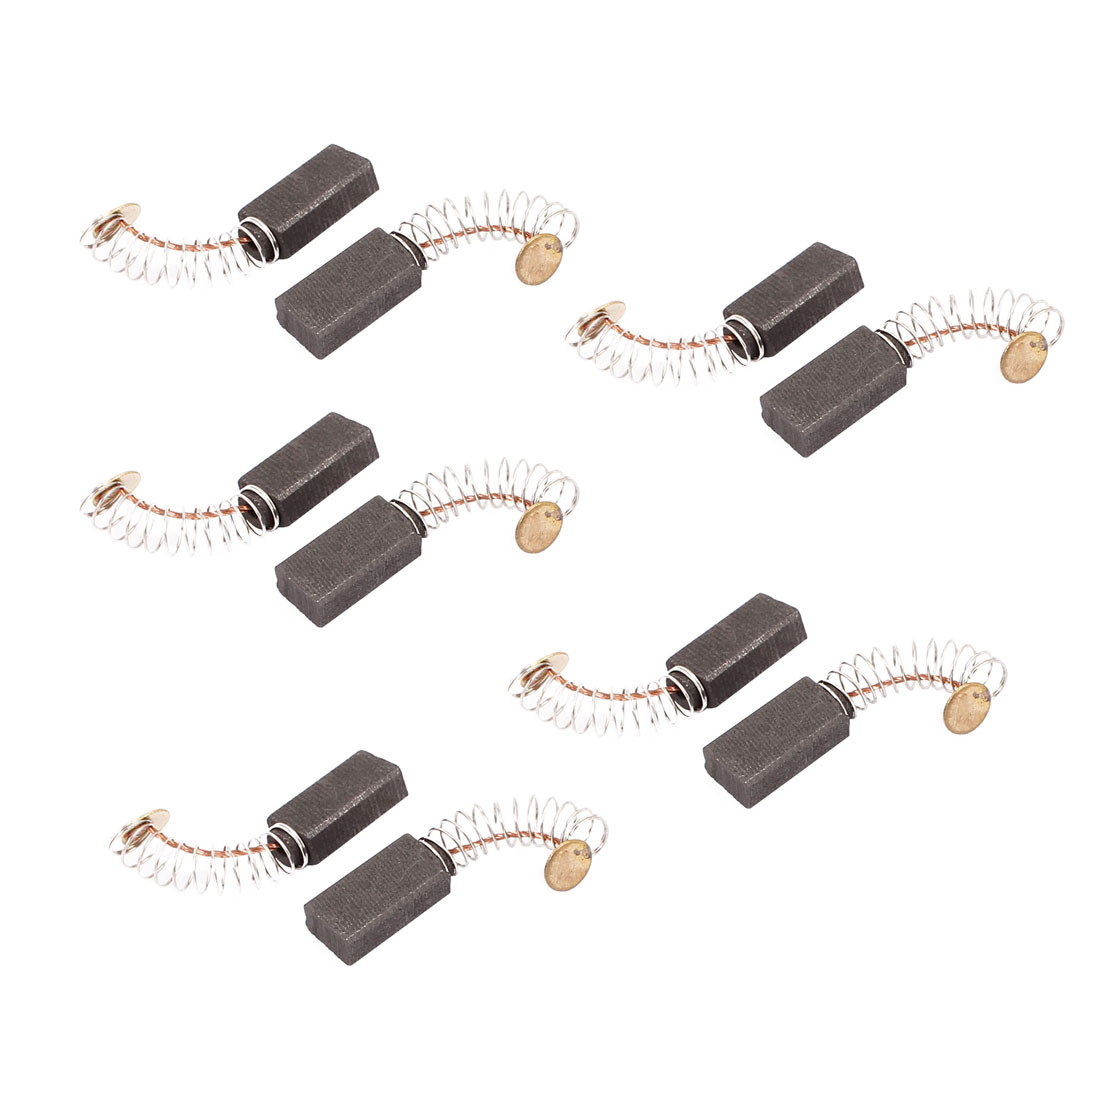 5 Pairs 36x15x8x5mm Carbon Brushes Power Tool for Electric Hammer Drill Motor